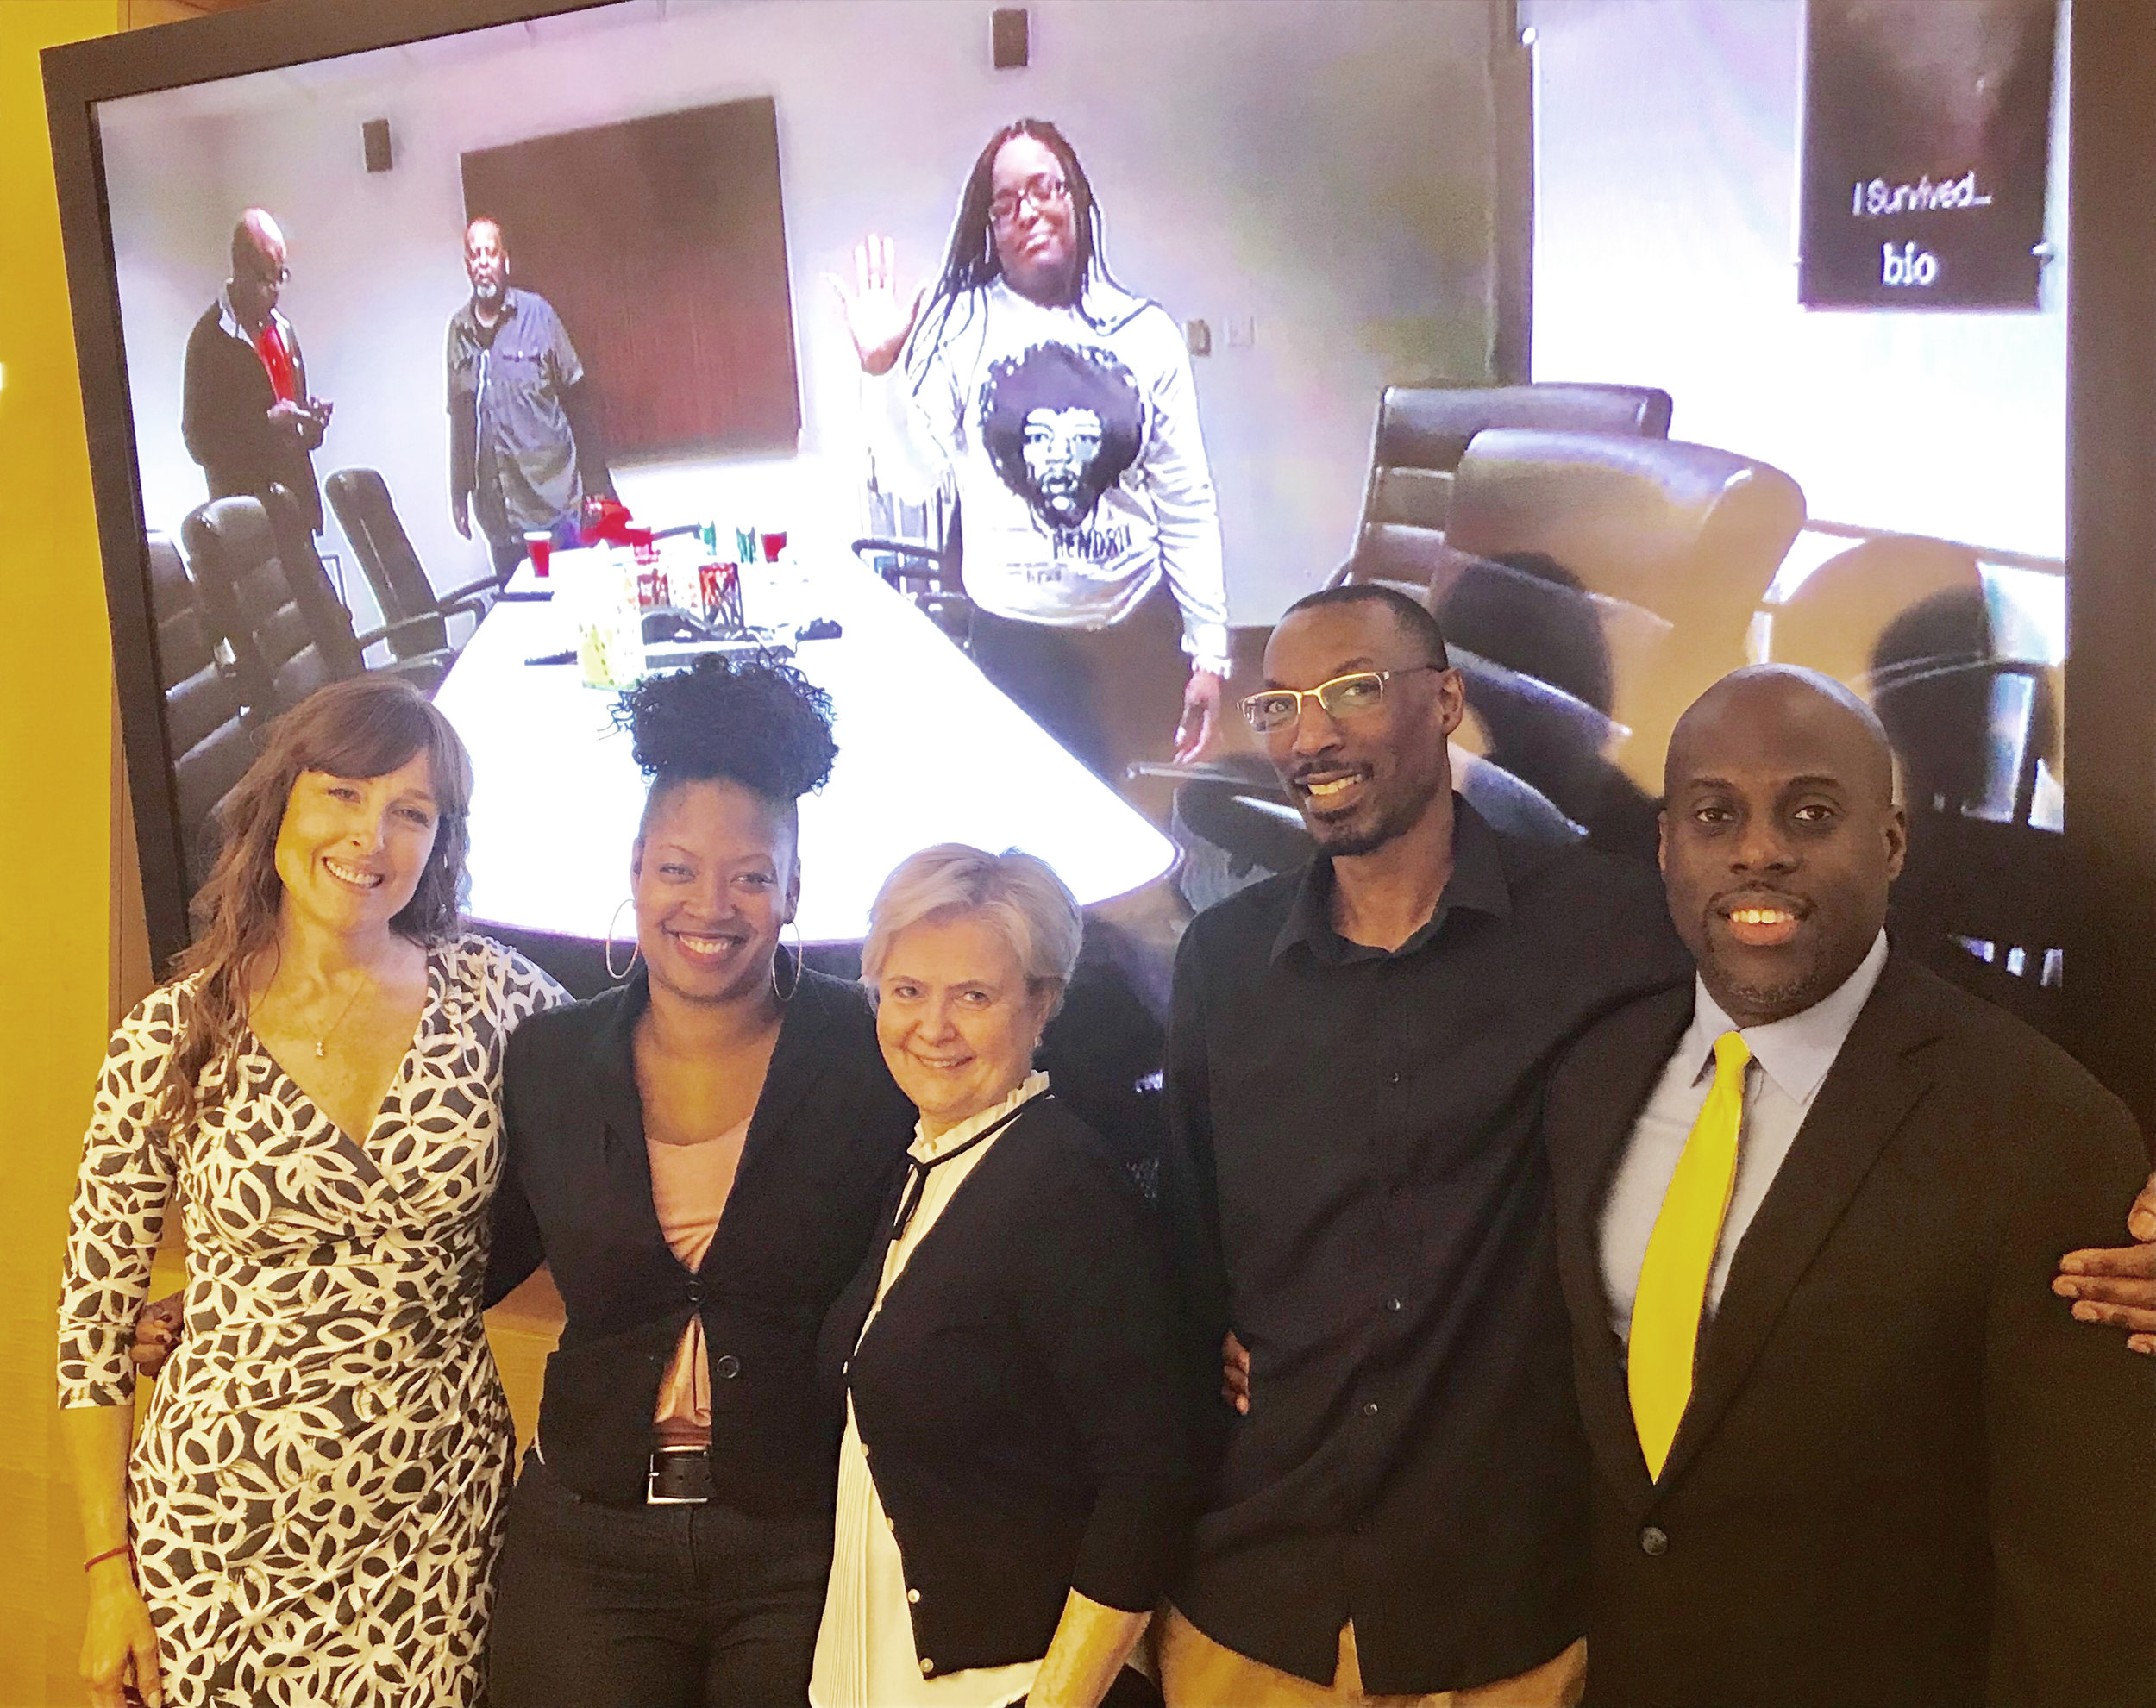 Photo L-R: Denise Strong - client, Jasmine Taylor, Elwira Cabala, Stephanie Williams (standing on video monitor), Godfrey Smallwood, Omar Roberts